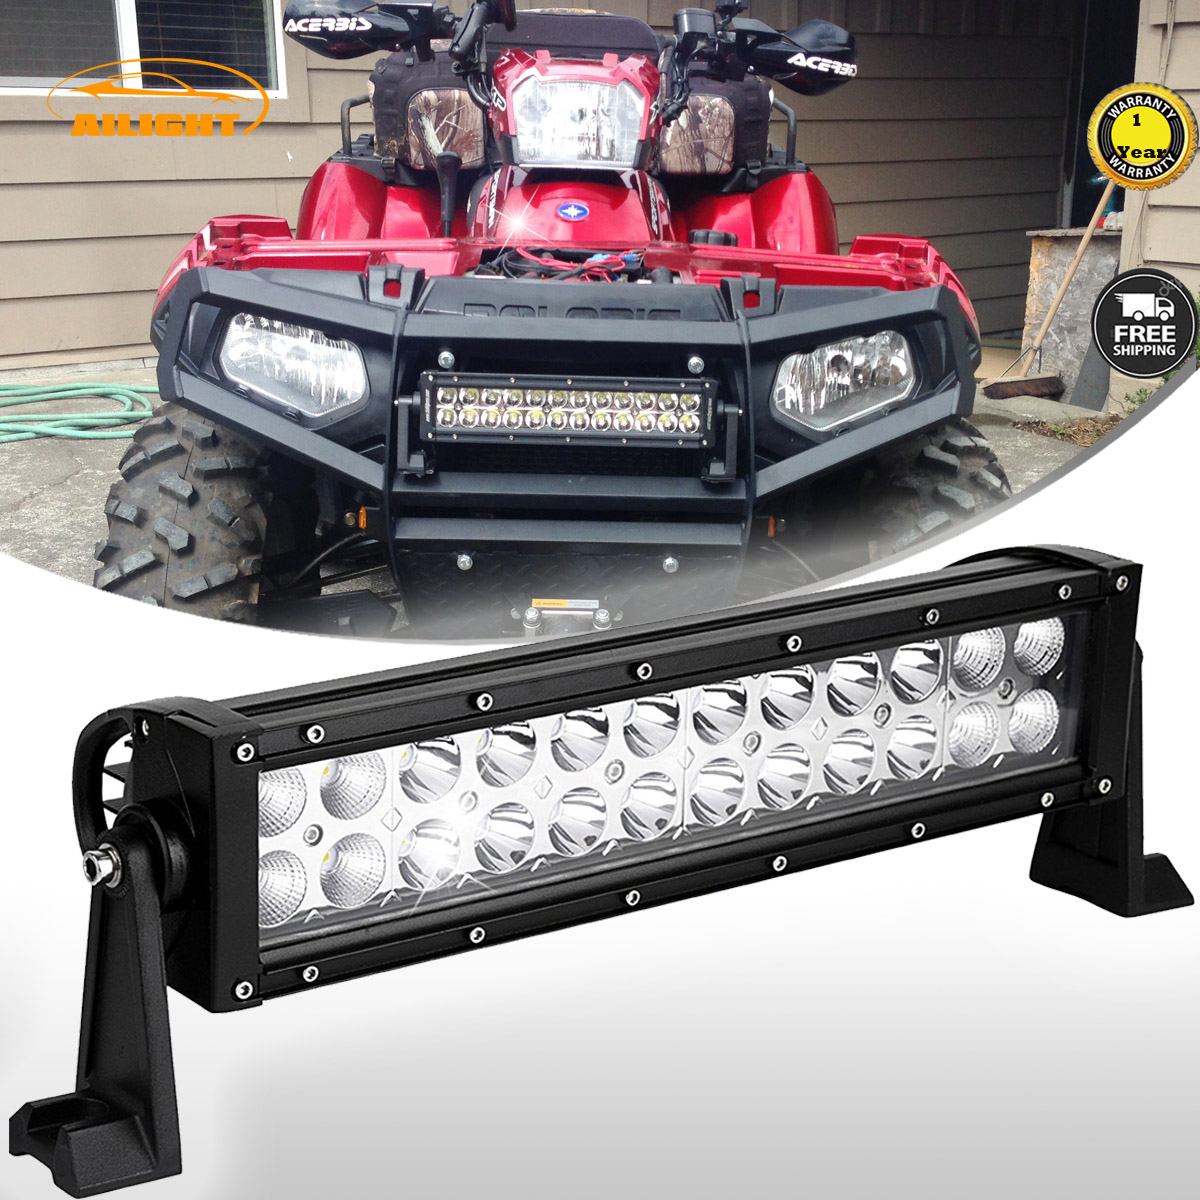 So bright 12inch led light bar combo the best for your atv utv 12inch led light bar combo the best for your atv utv and dirt bike aloadofball Image collections